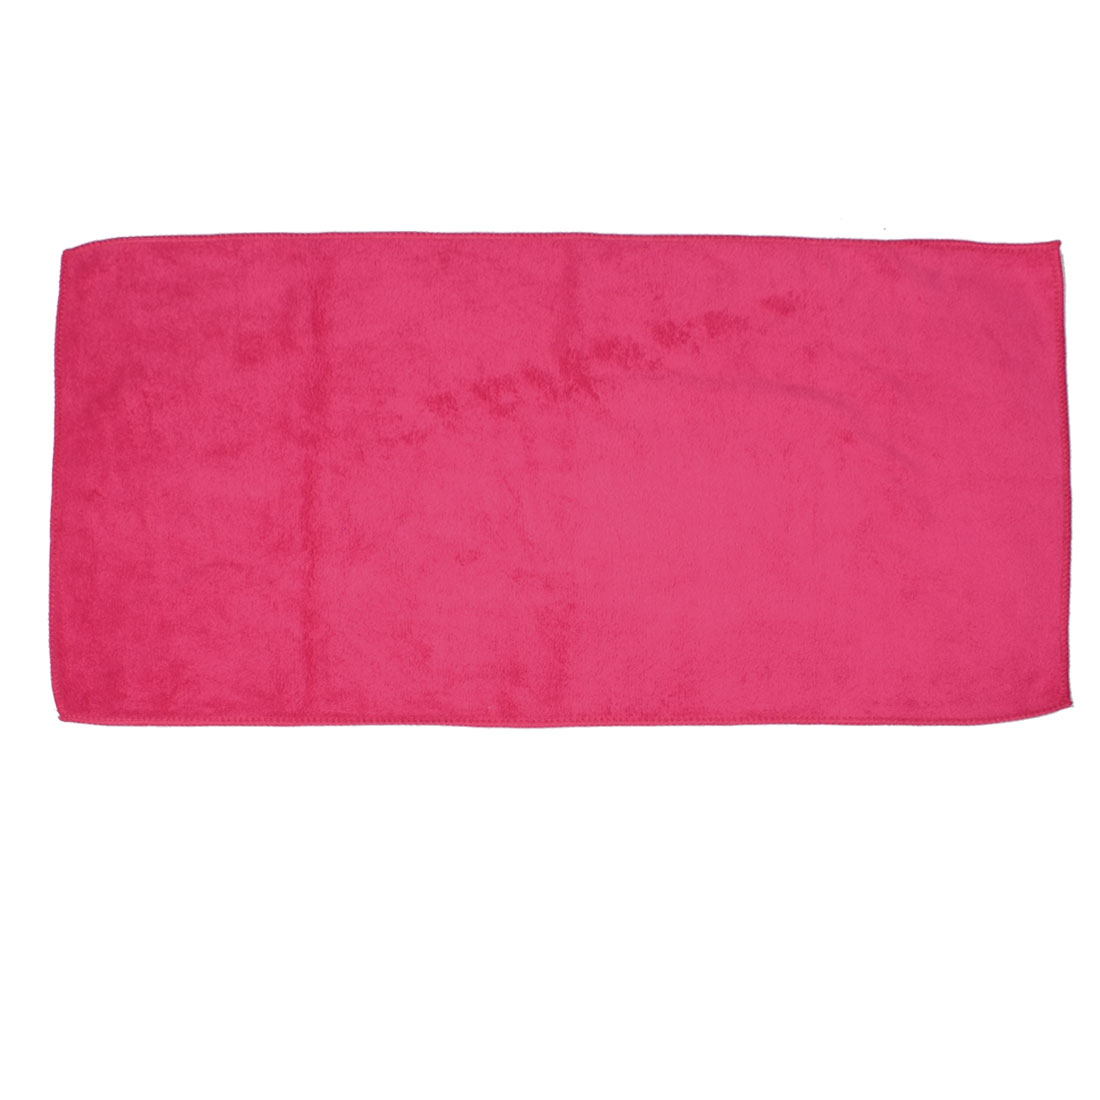 "Rectangle Red 26"" x 12.6"" Microfiber Towel Car Cleaning Cloth"